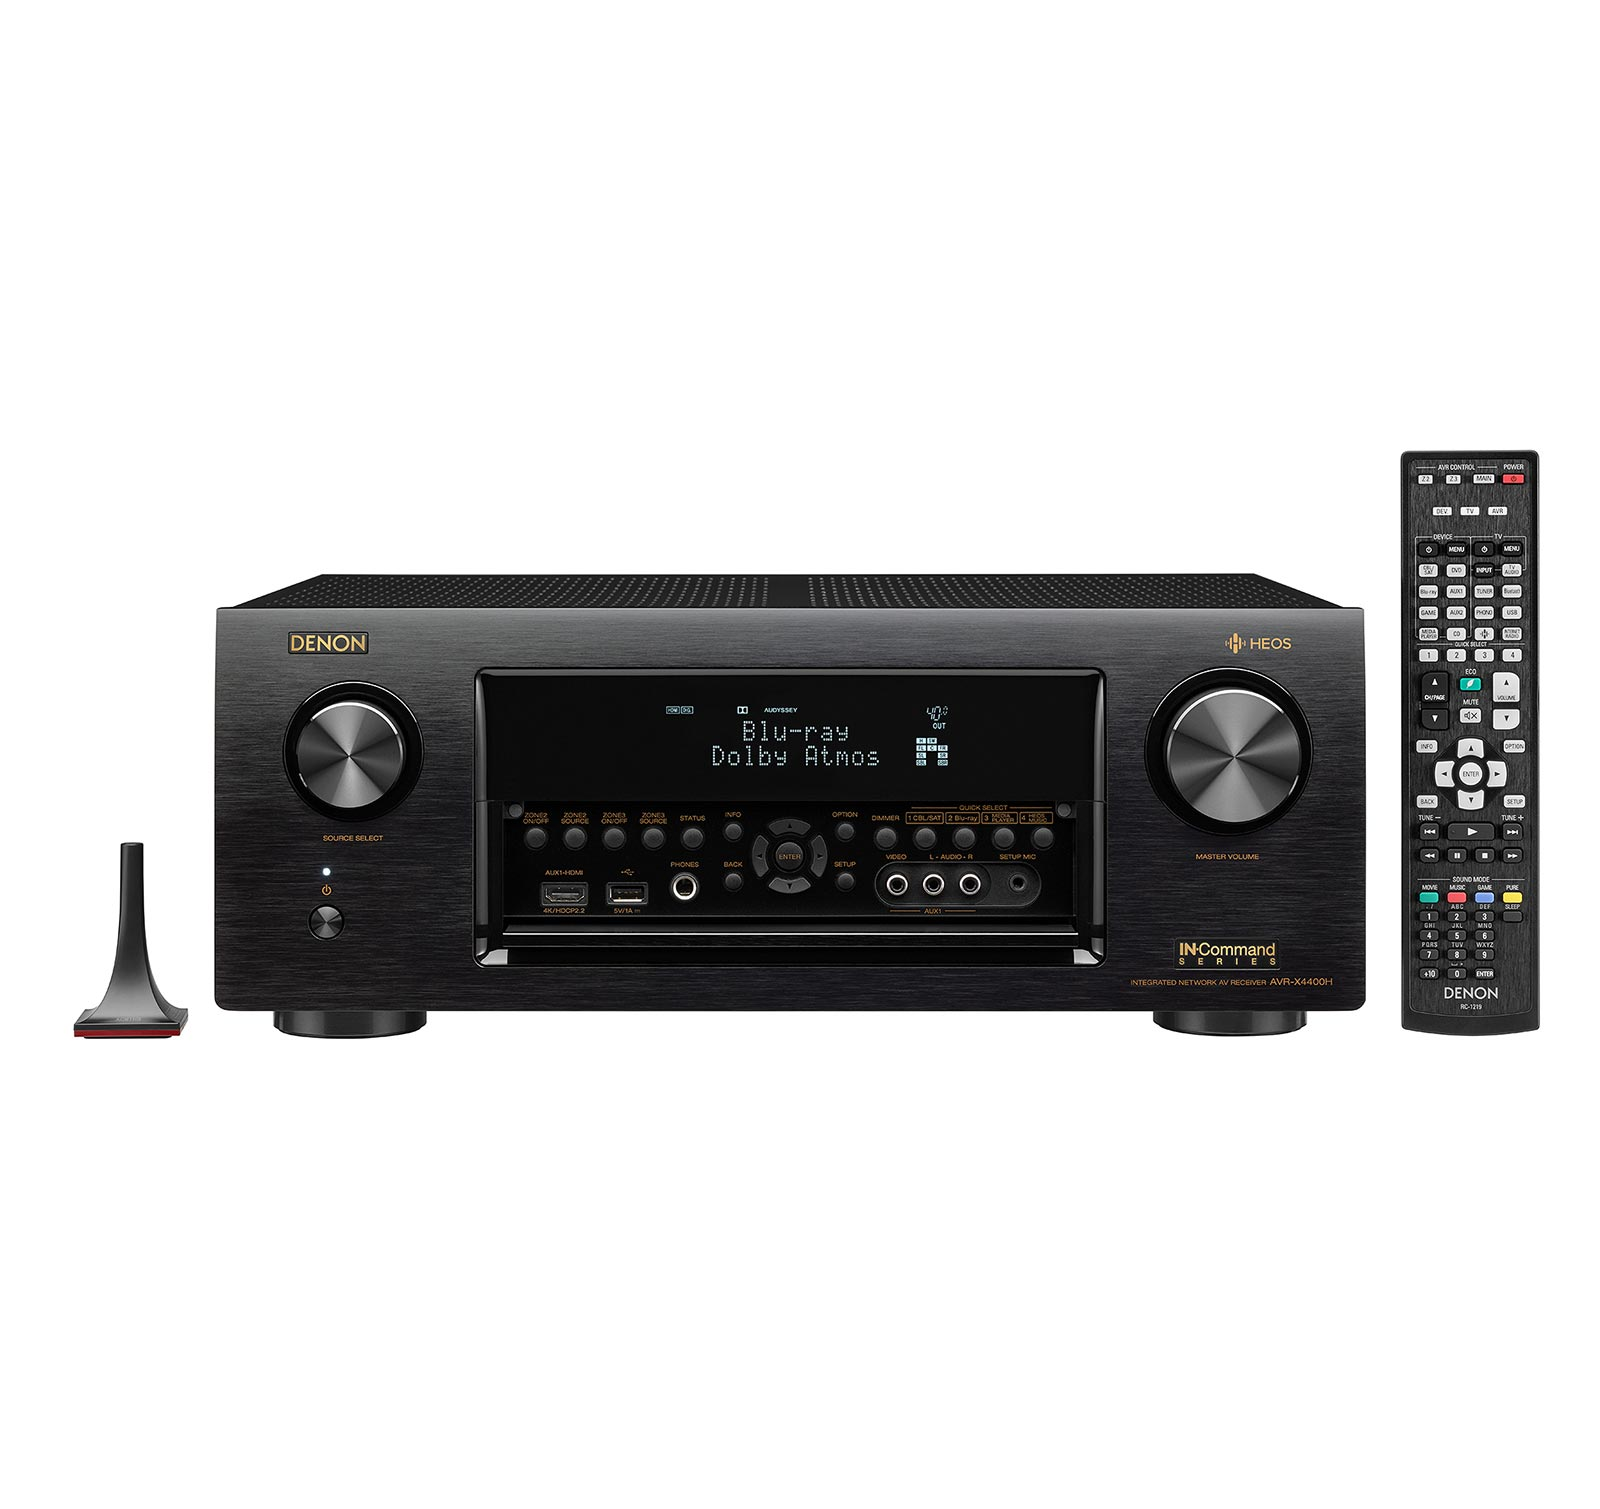 Denon AVRX4400H Certified Refurbished 9.2-channel AV Receiver with HEOS by Denon